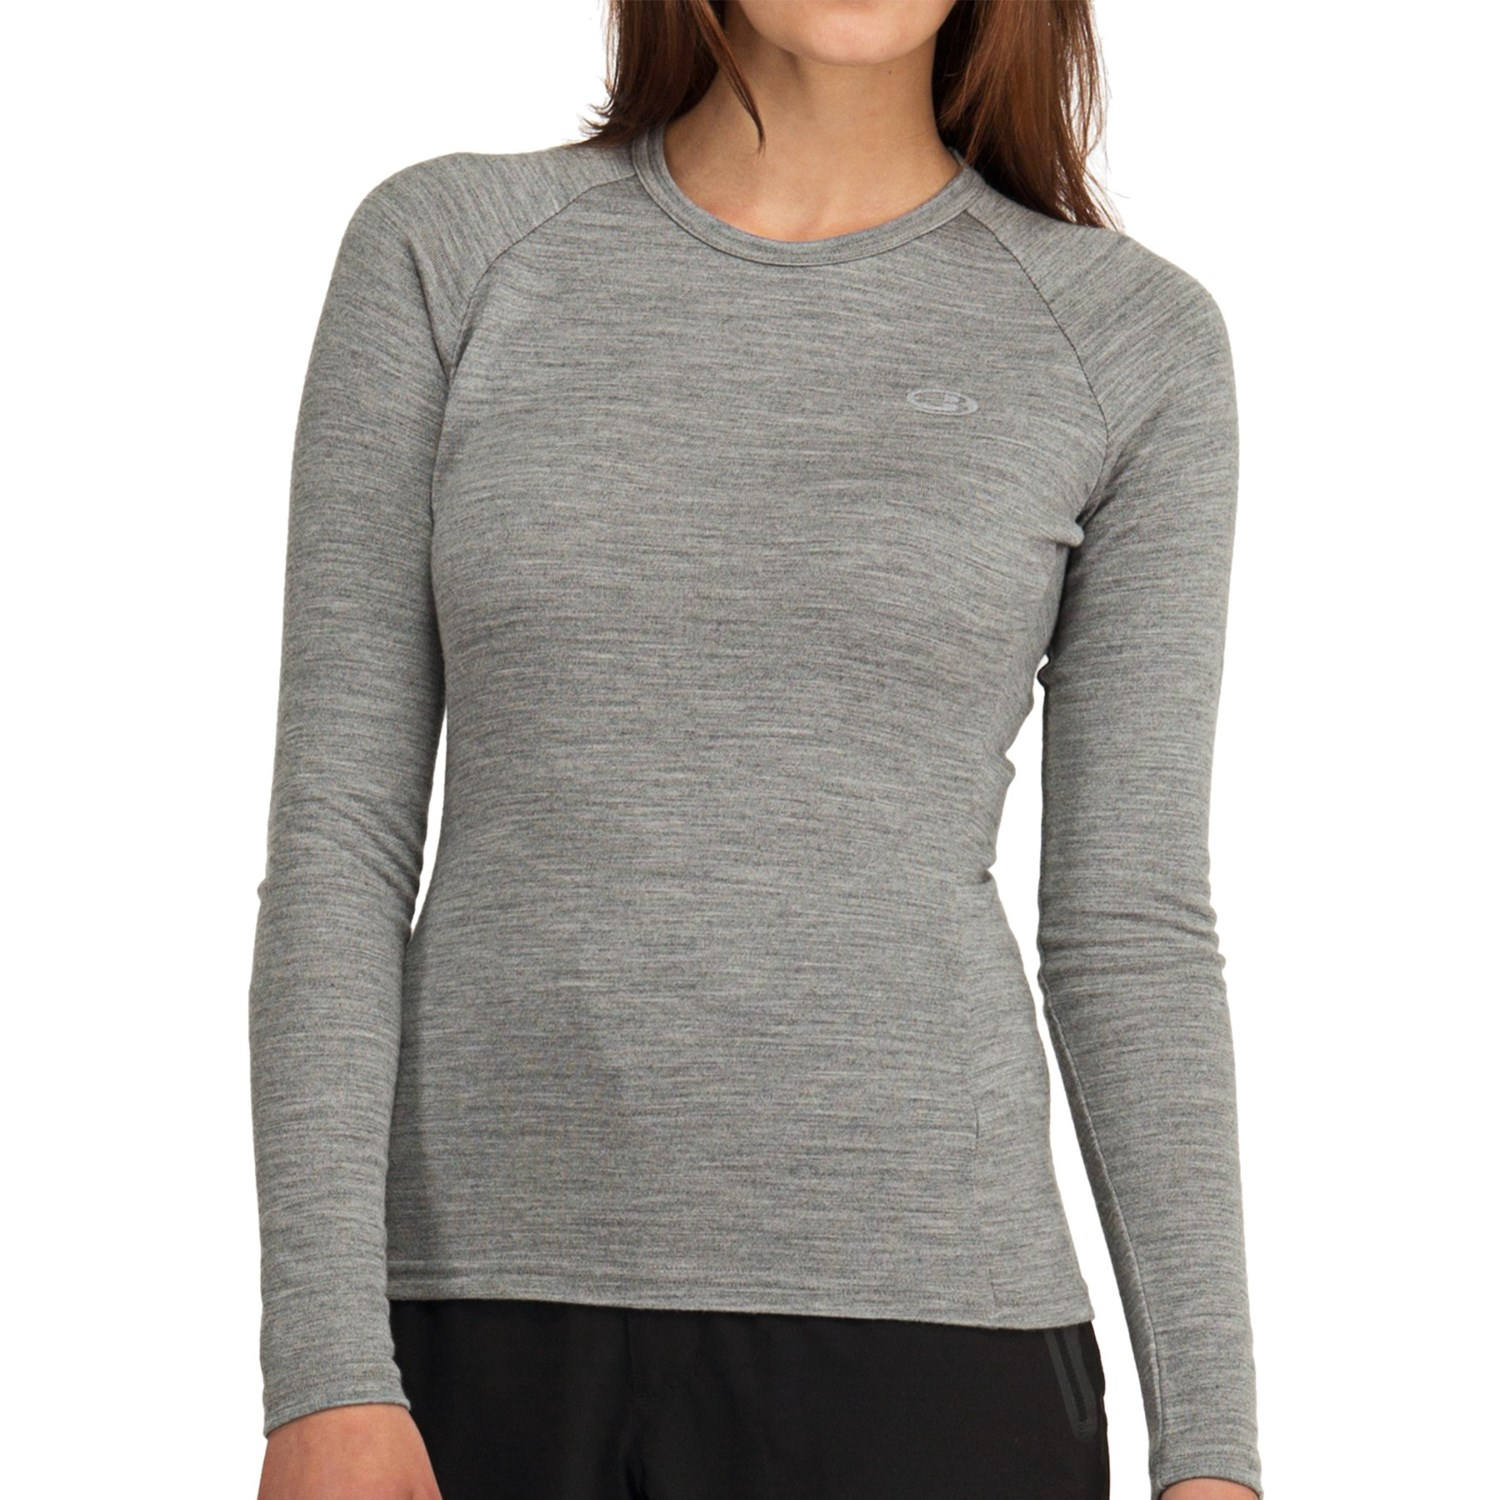 Icebreaker bodyfit 260 crew shirt merino wool upf 25 for Merino wool shirt womens